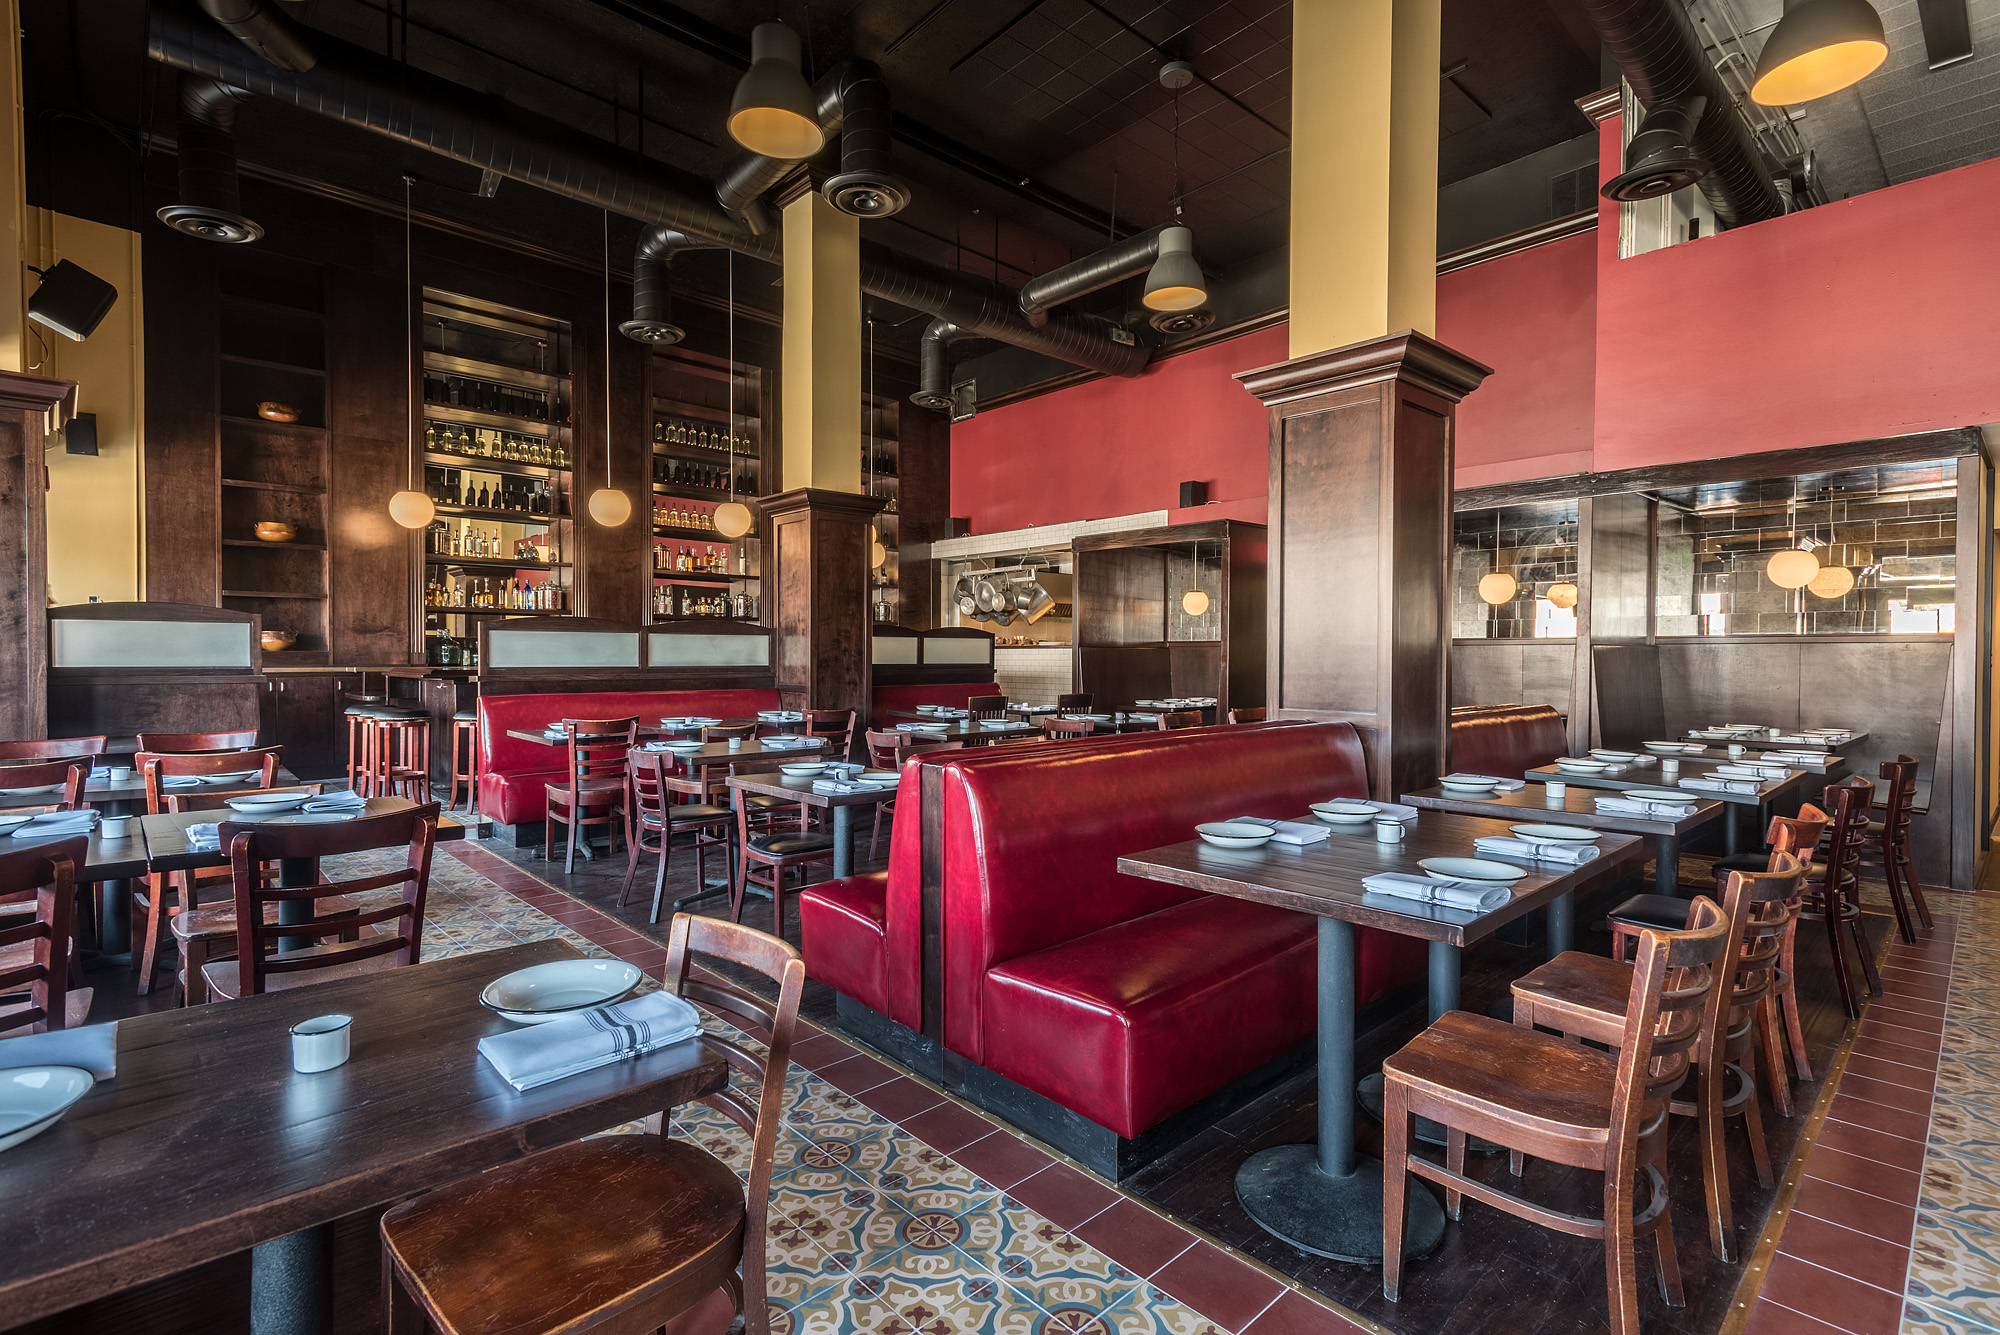 La Brea Seafood Option Pata Salada Throws In The Towel After Four Months